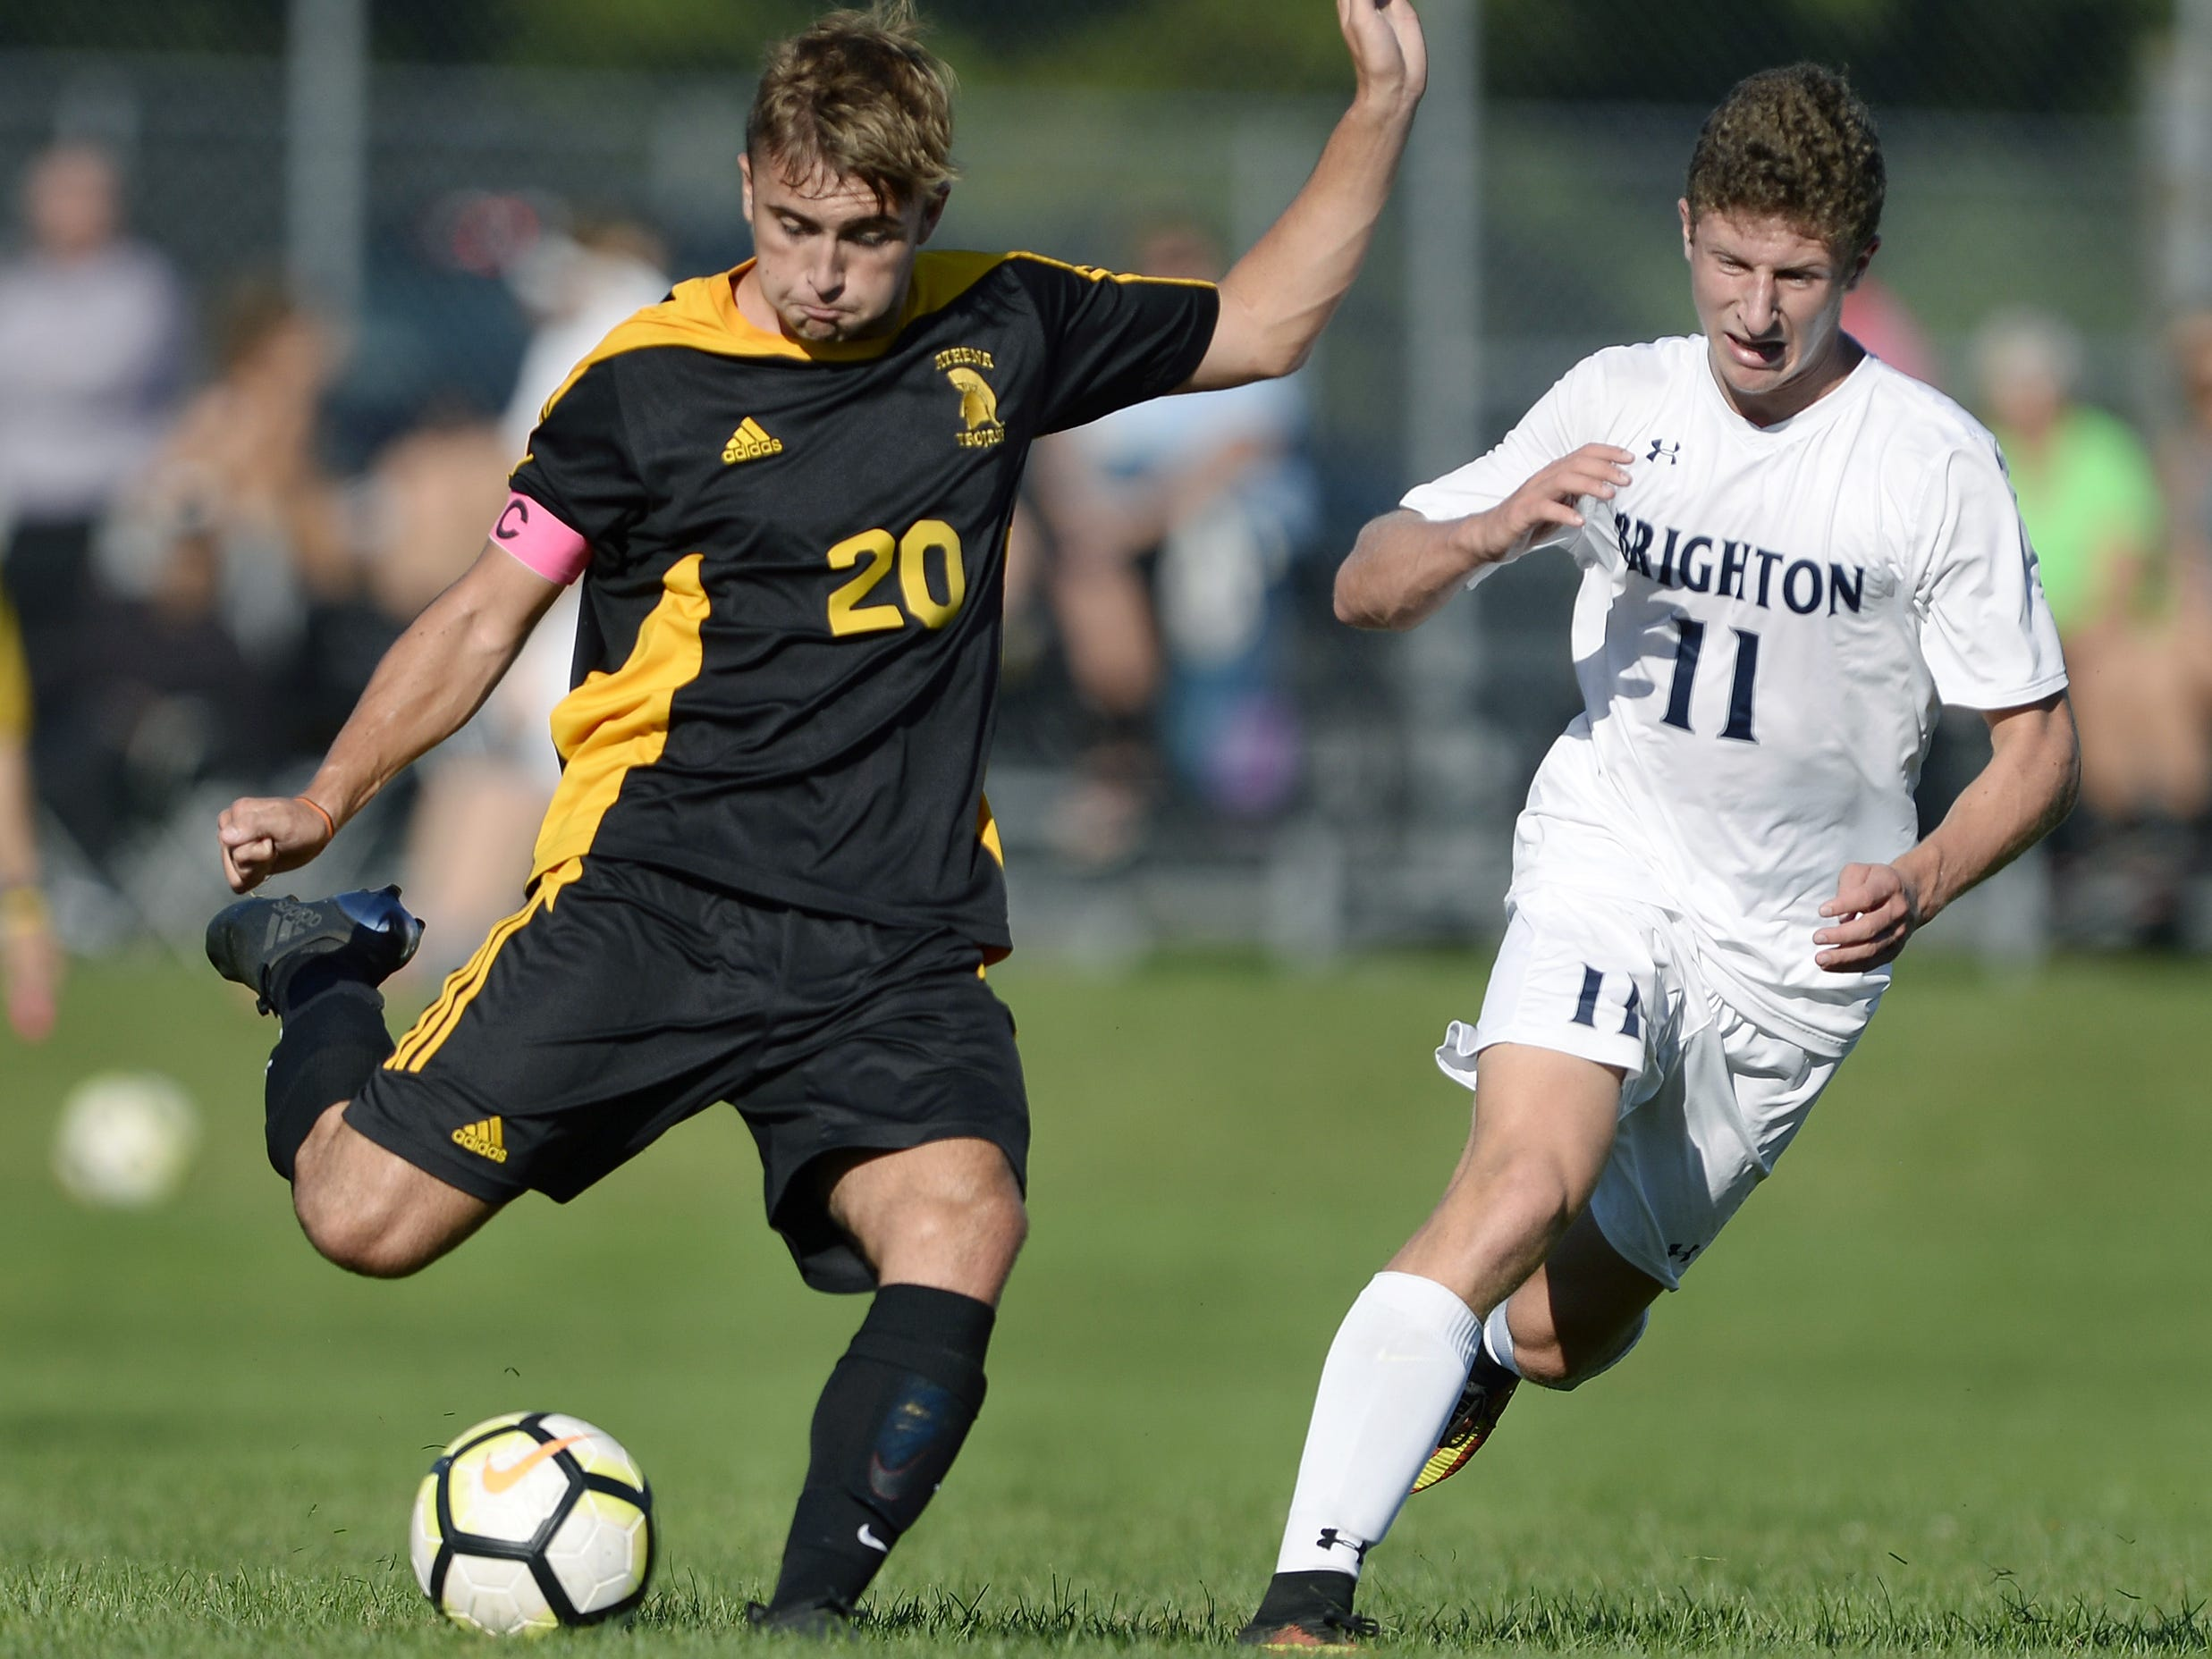 Greece Athena's Dylan Rice, left, winds up a shot on goal while defended by Brighton's Sam O'Connor during a regular season game played at Greece Athena High School, Thursday, Sept. 13, 2018. Greece Athena beat Brighton 1-0.